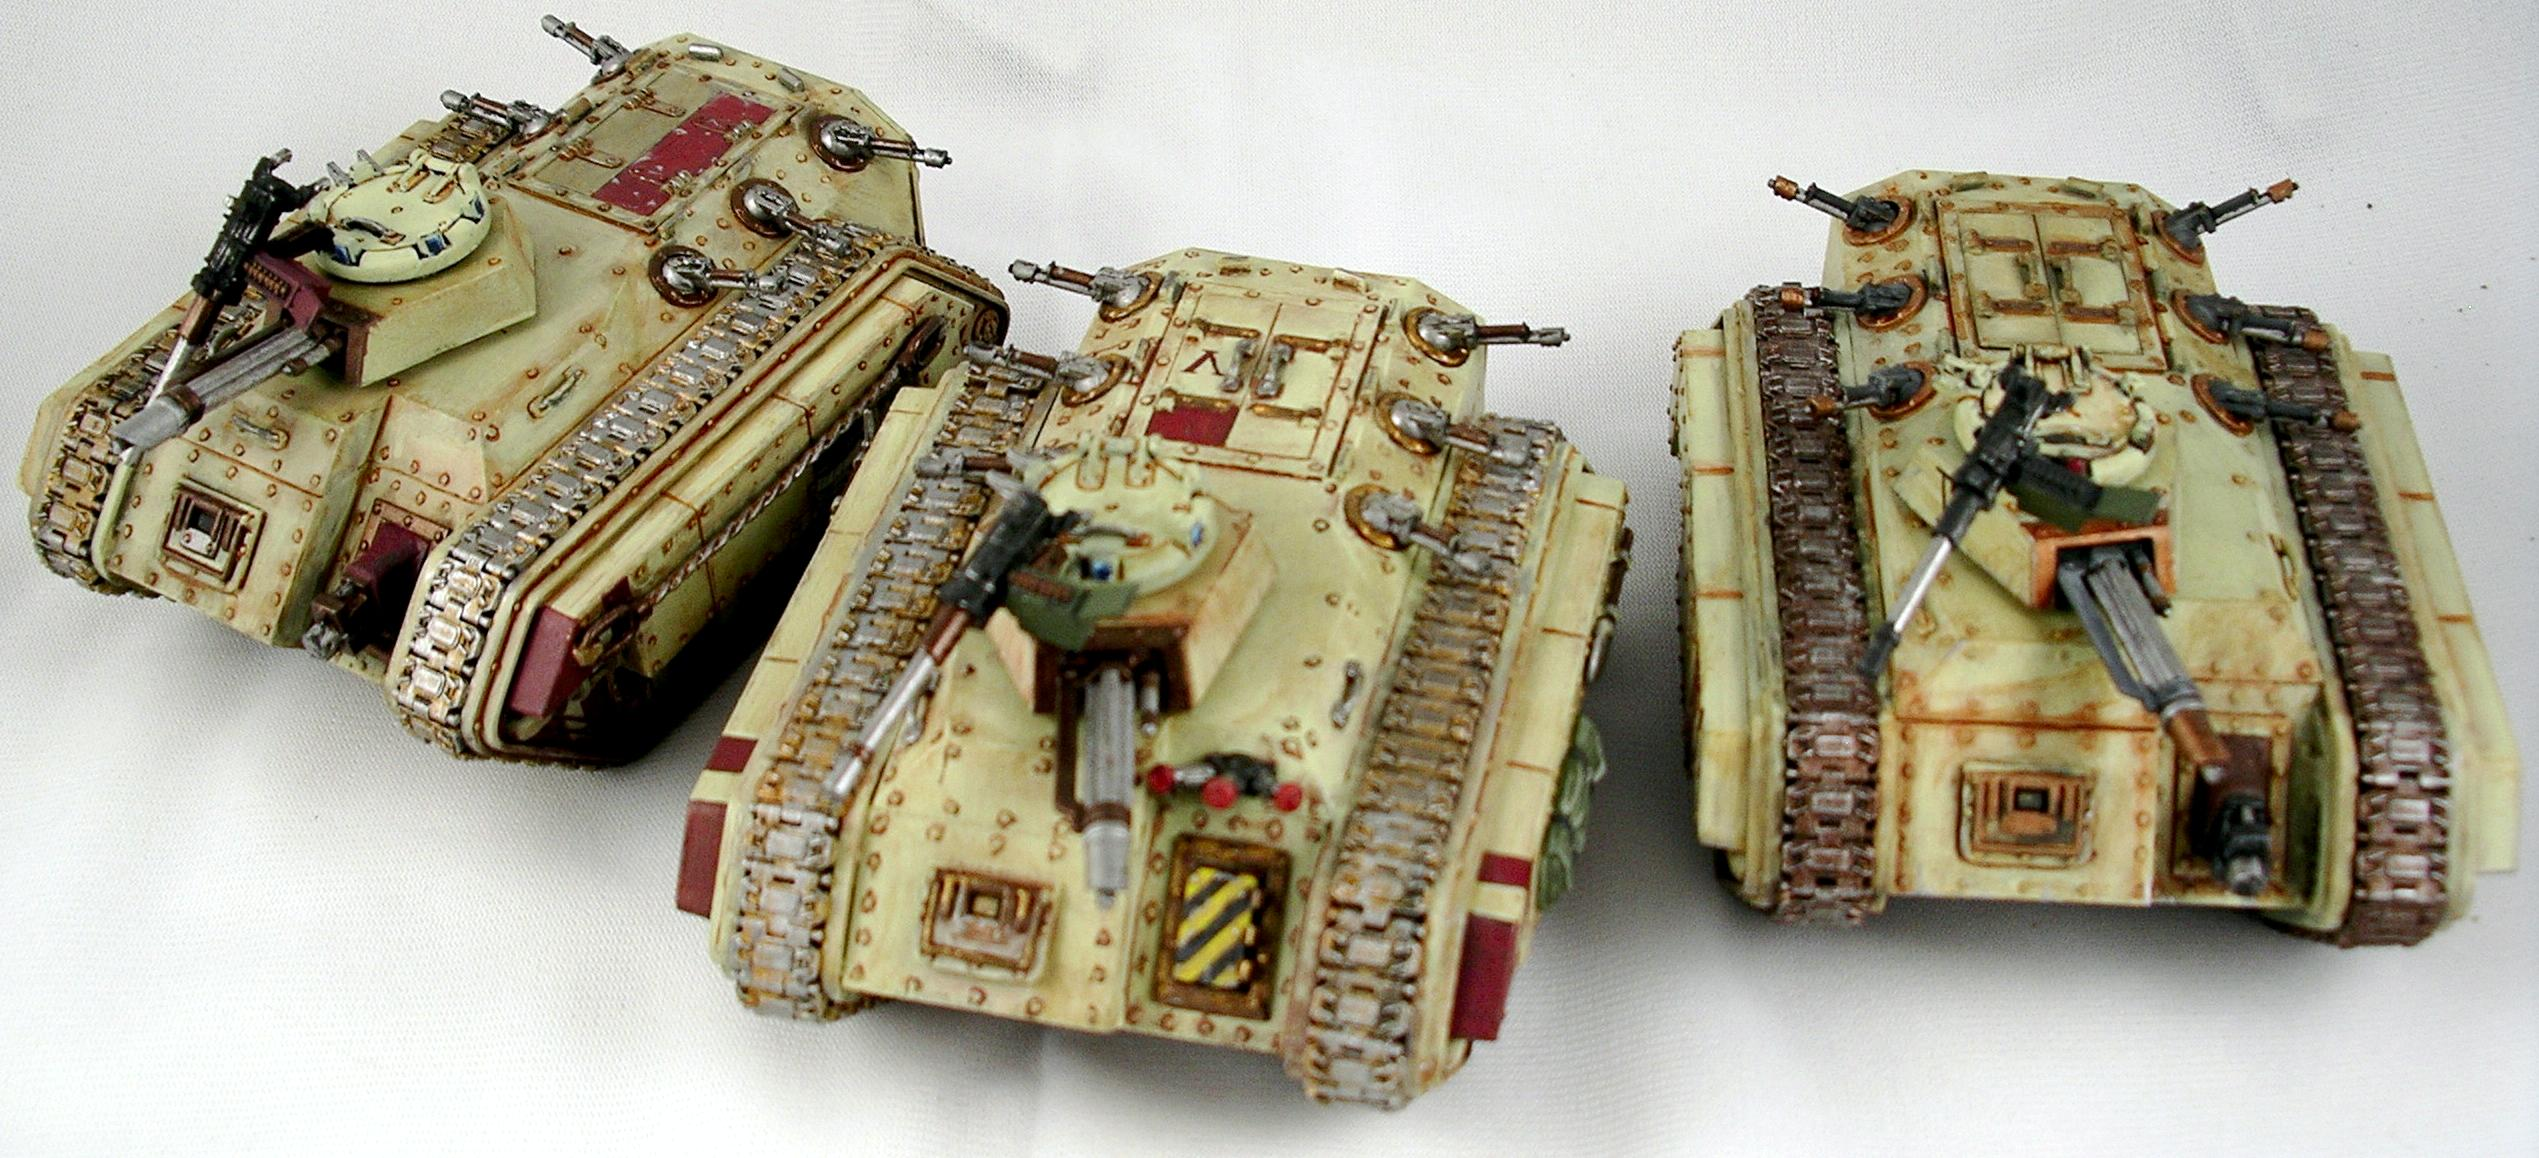 Chimeras, Imperial Guard, Tank, Vostroyan